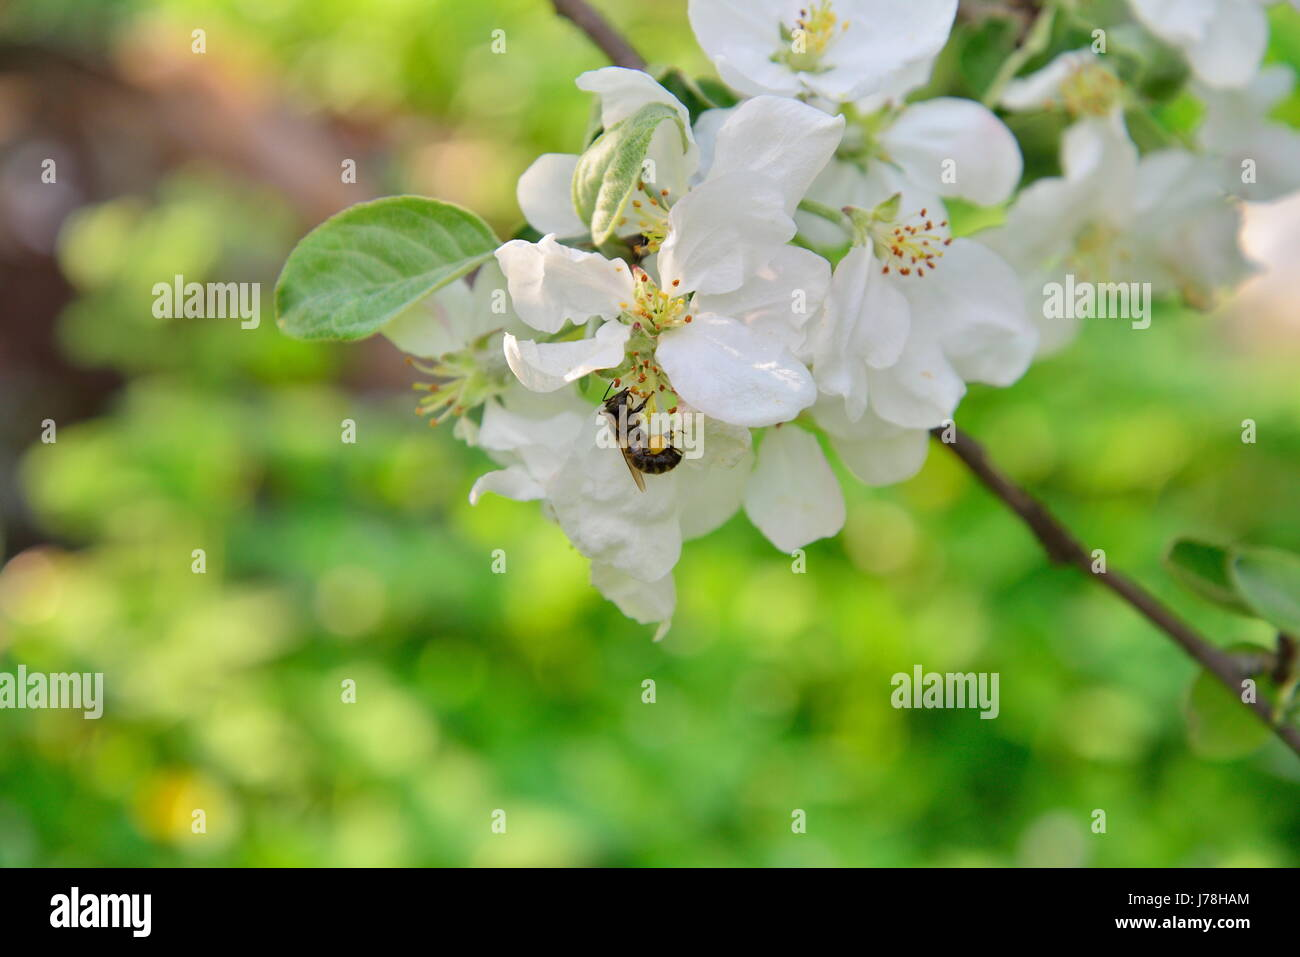 A Bee Is Sitting On Apple Tree Branch With White Flowers In Summer